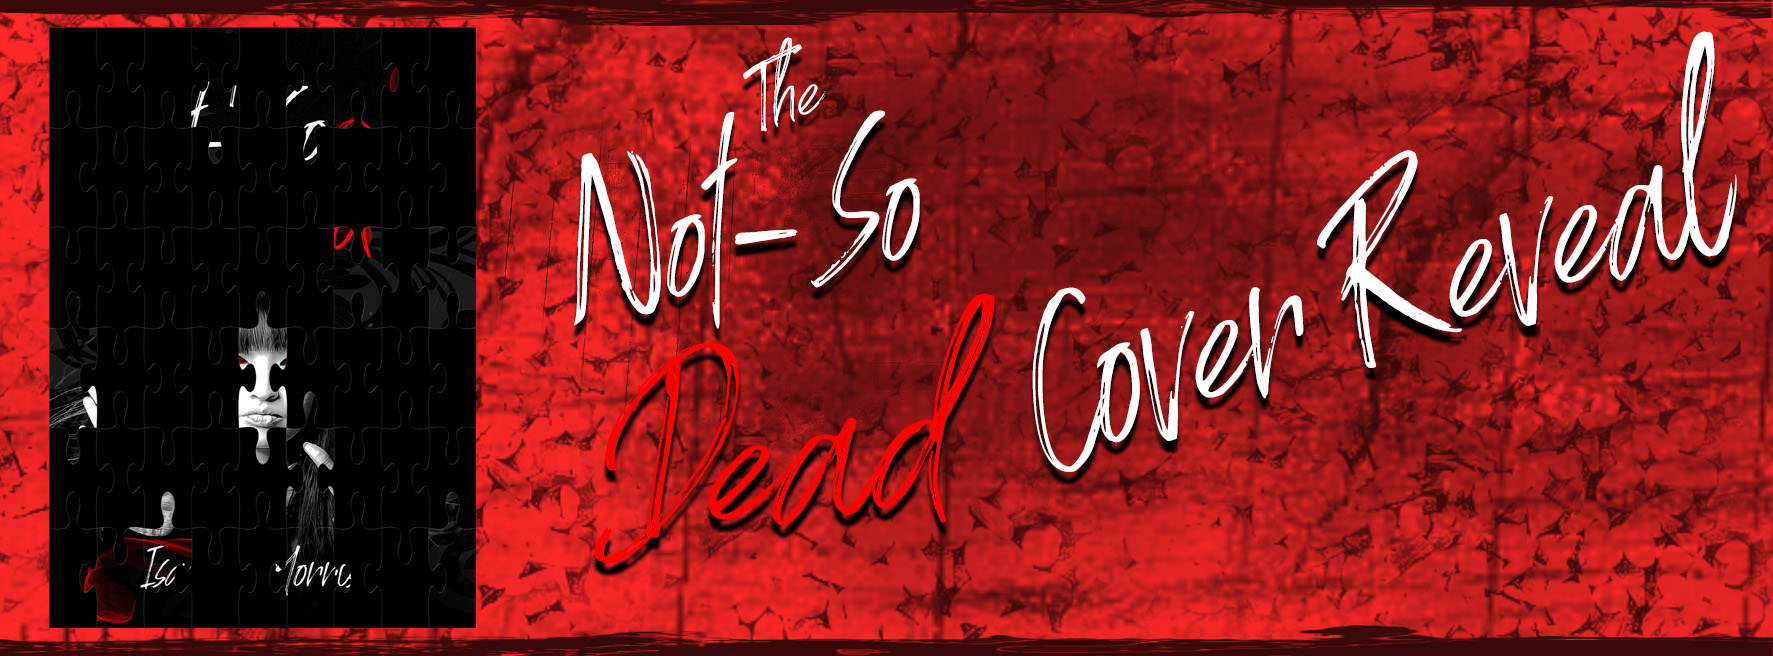 The Not-So Dead